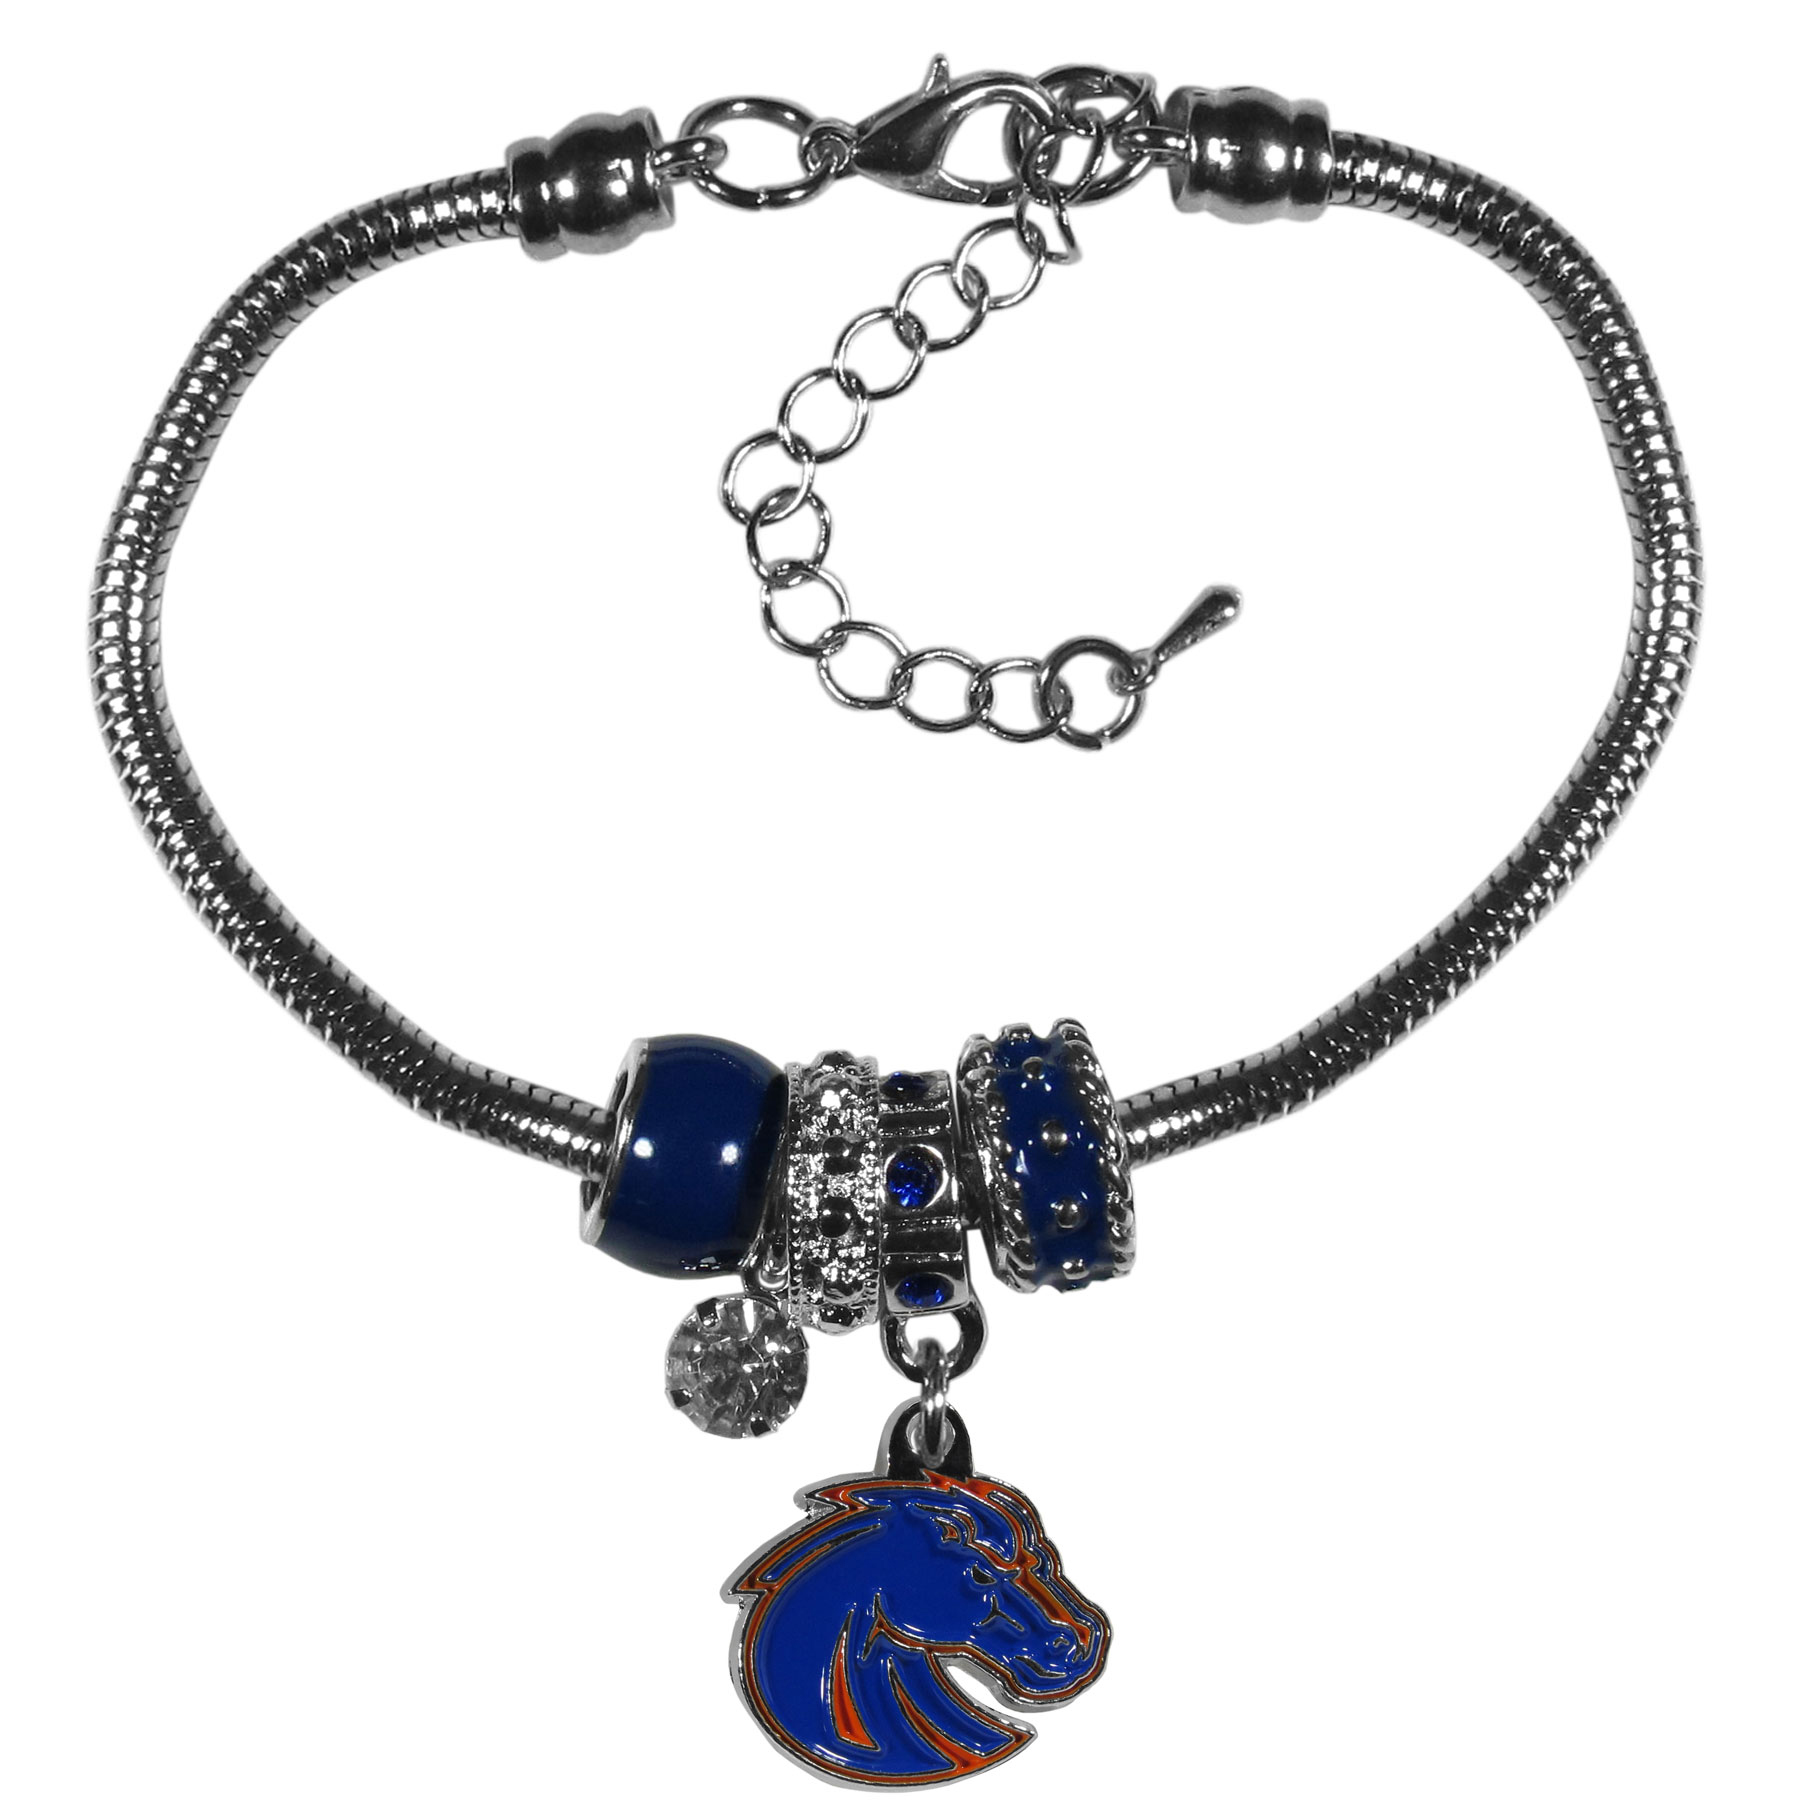 Boise St. Broncos Euro Bead Bracelet - We have combined the wildly popular Euro style beads with your favorite team to create our  Boise St. Broncos bead bracelet. The 7.5 inch snake chain with 2 inch extender features 4 Euro beads with enameled team colors and rhinestone accents with a high polish, nickel free charm and rhinestone charm. Perfect way to show off your team pride.